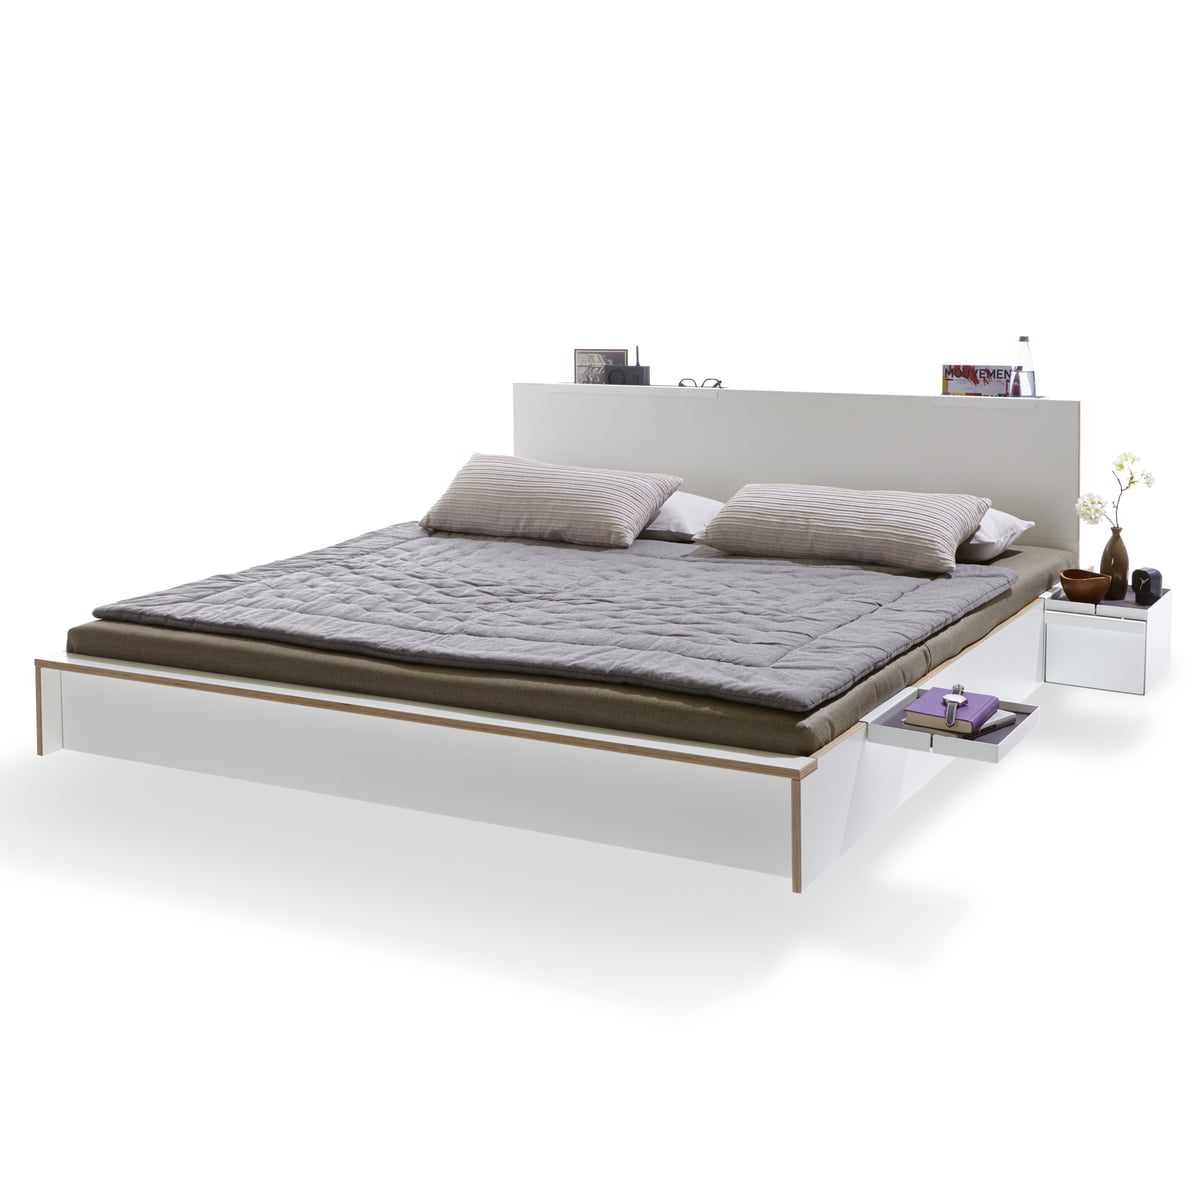 Bedombouw 140 Bij 200.The Flai Bed By Muller Mobelwerkstatten In The Shop